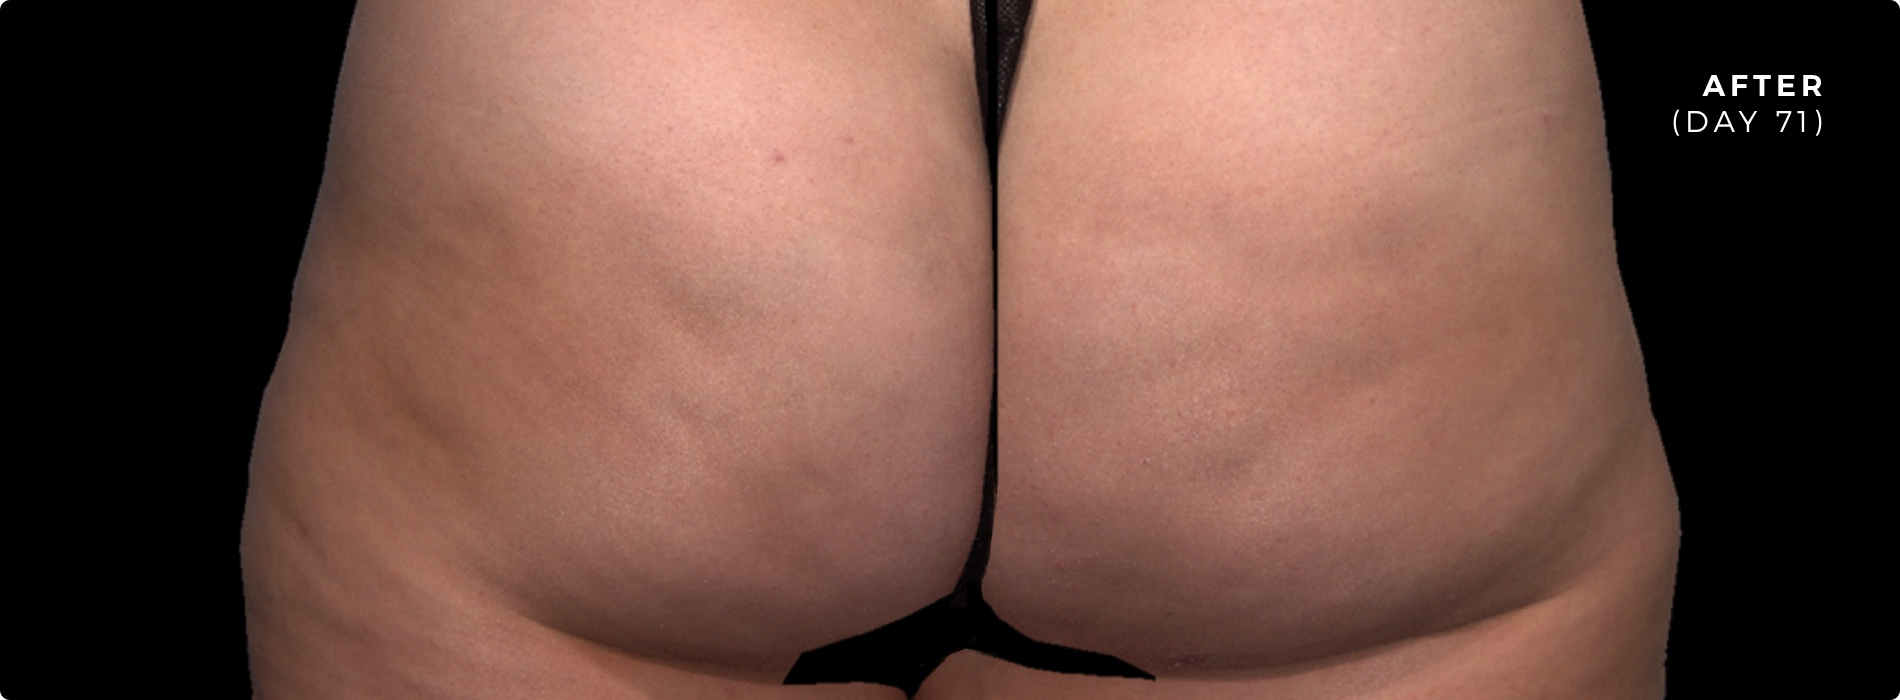 Cellulite Injections After